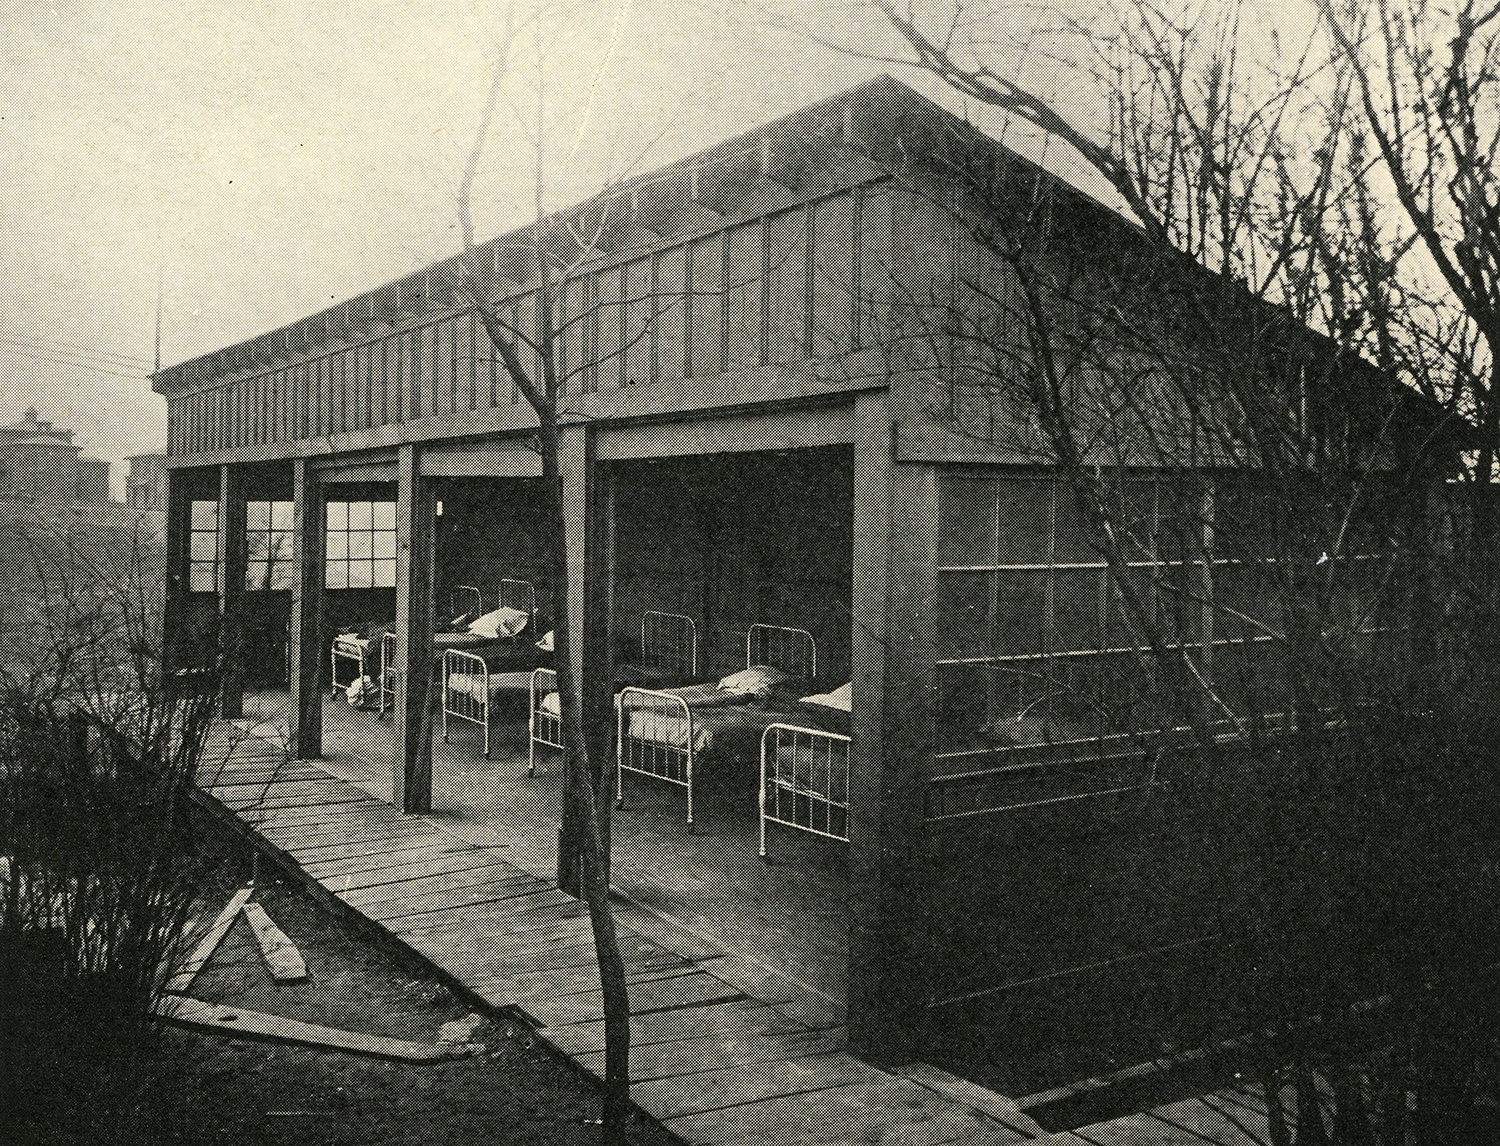 Open-air shacks with beds for patients, c. 1920.